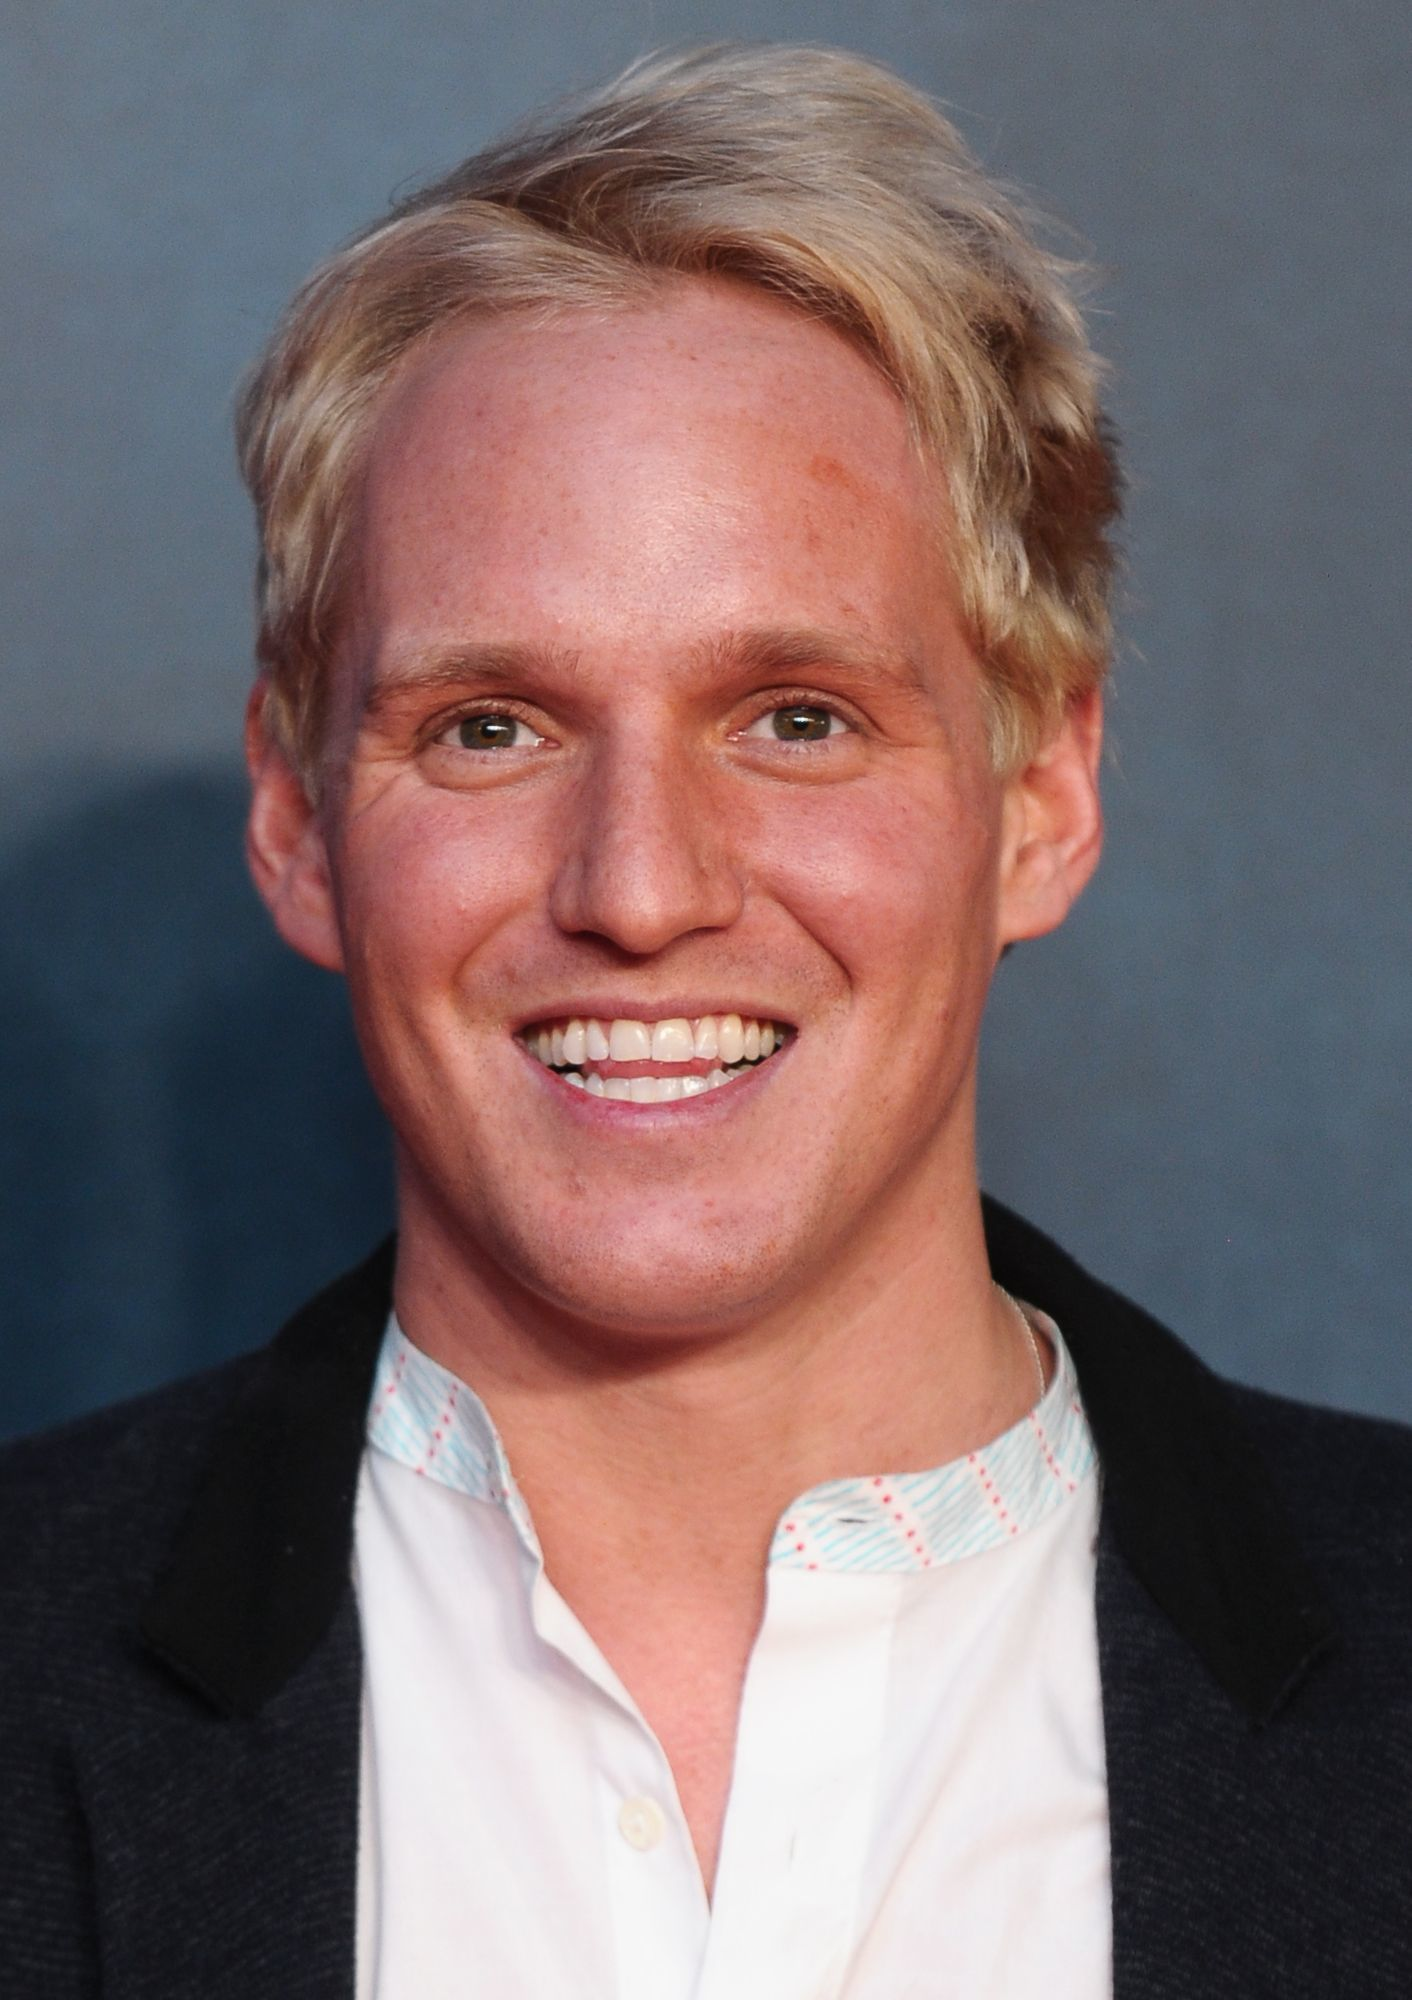 Jamie Laing Just Shaved Off His Signature Blonde Hair